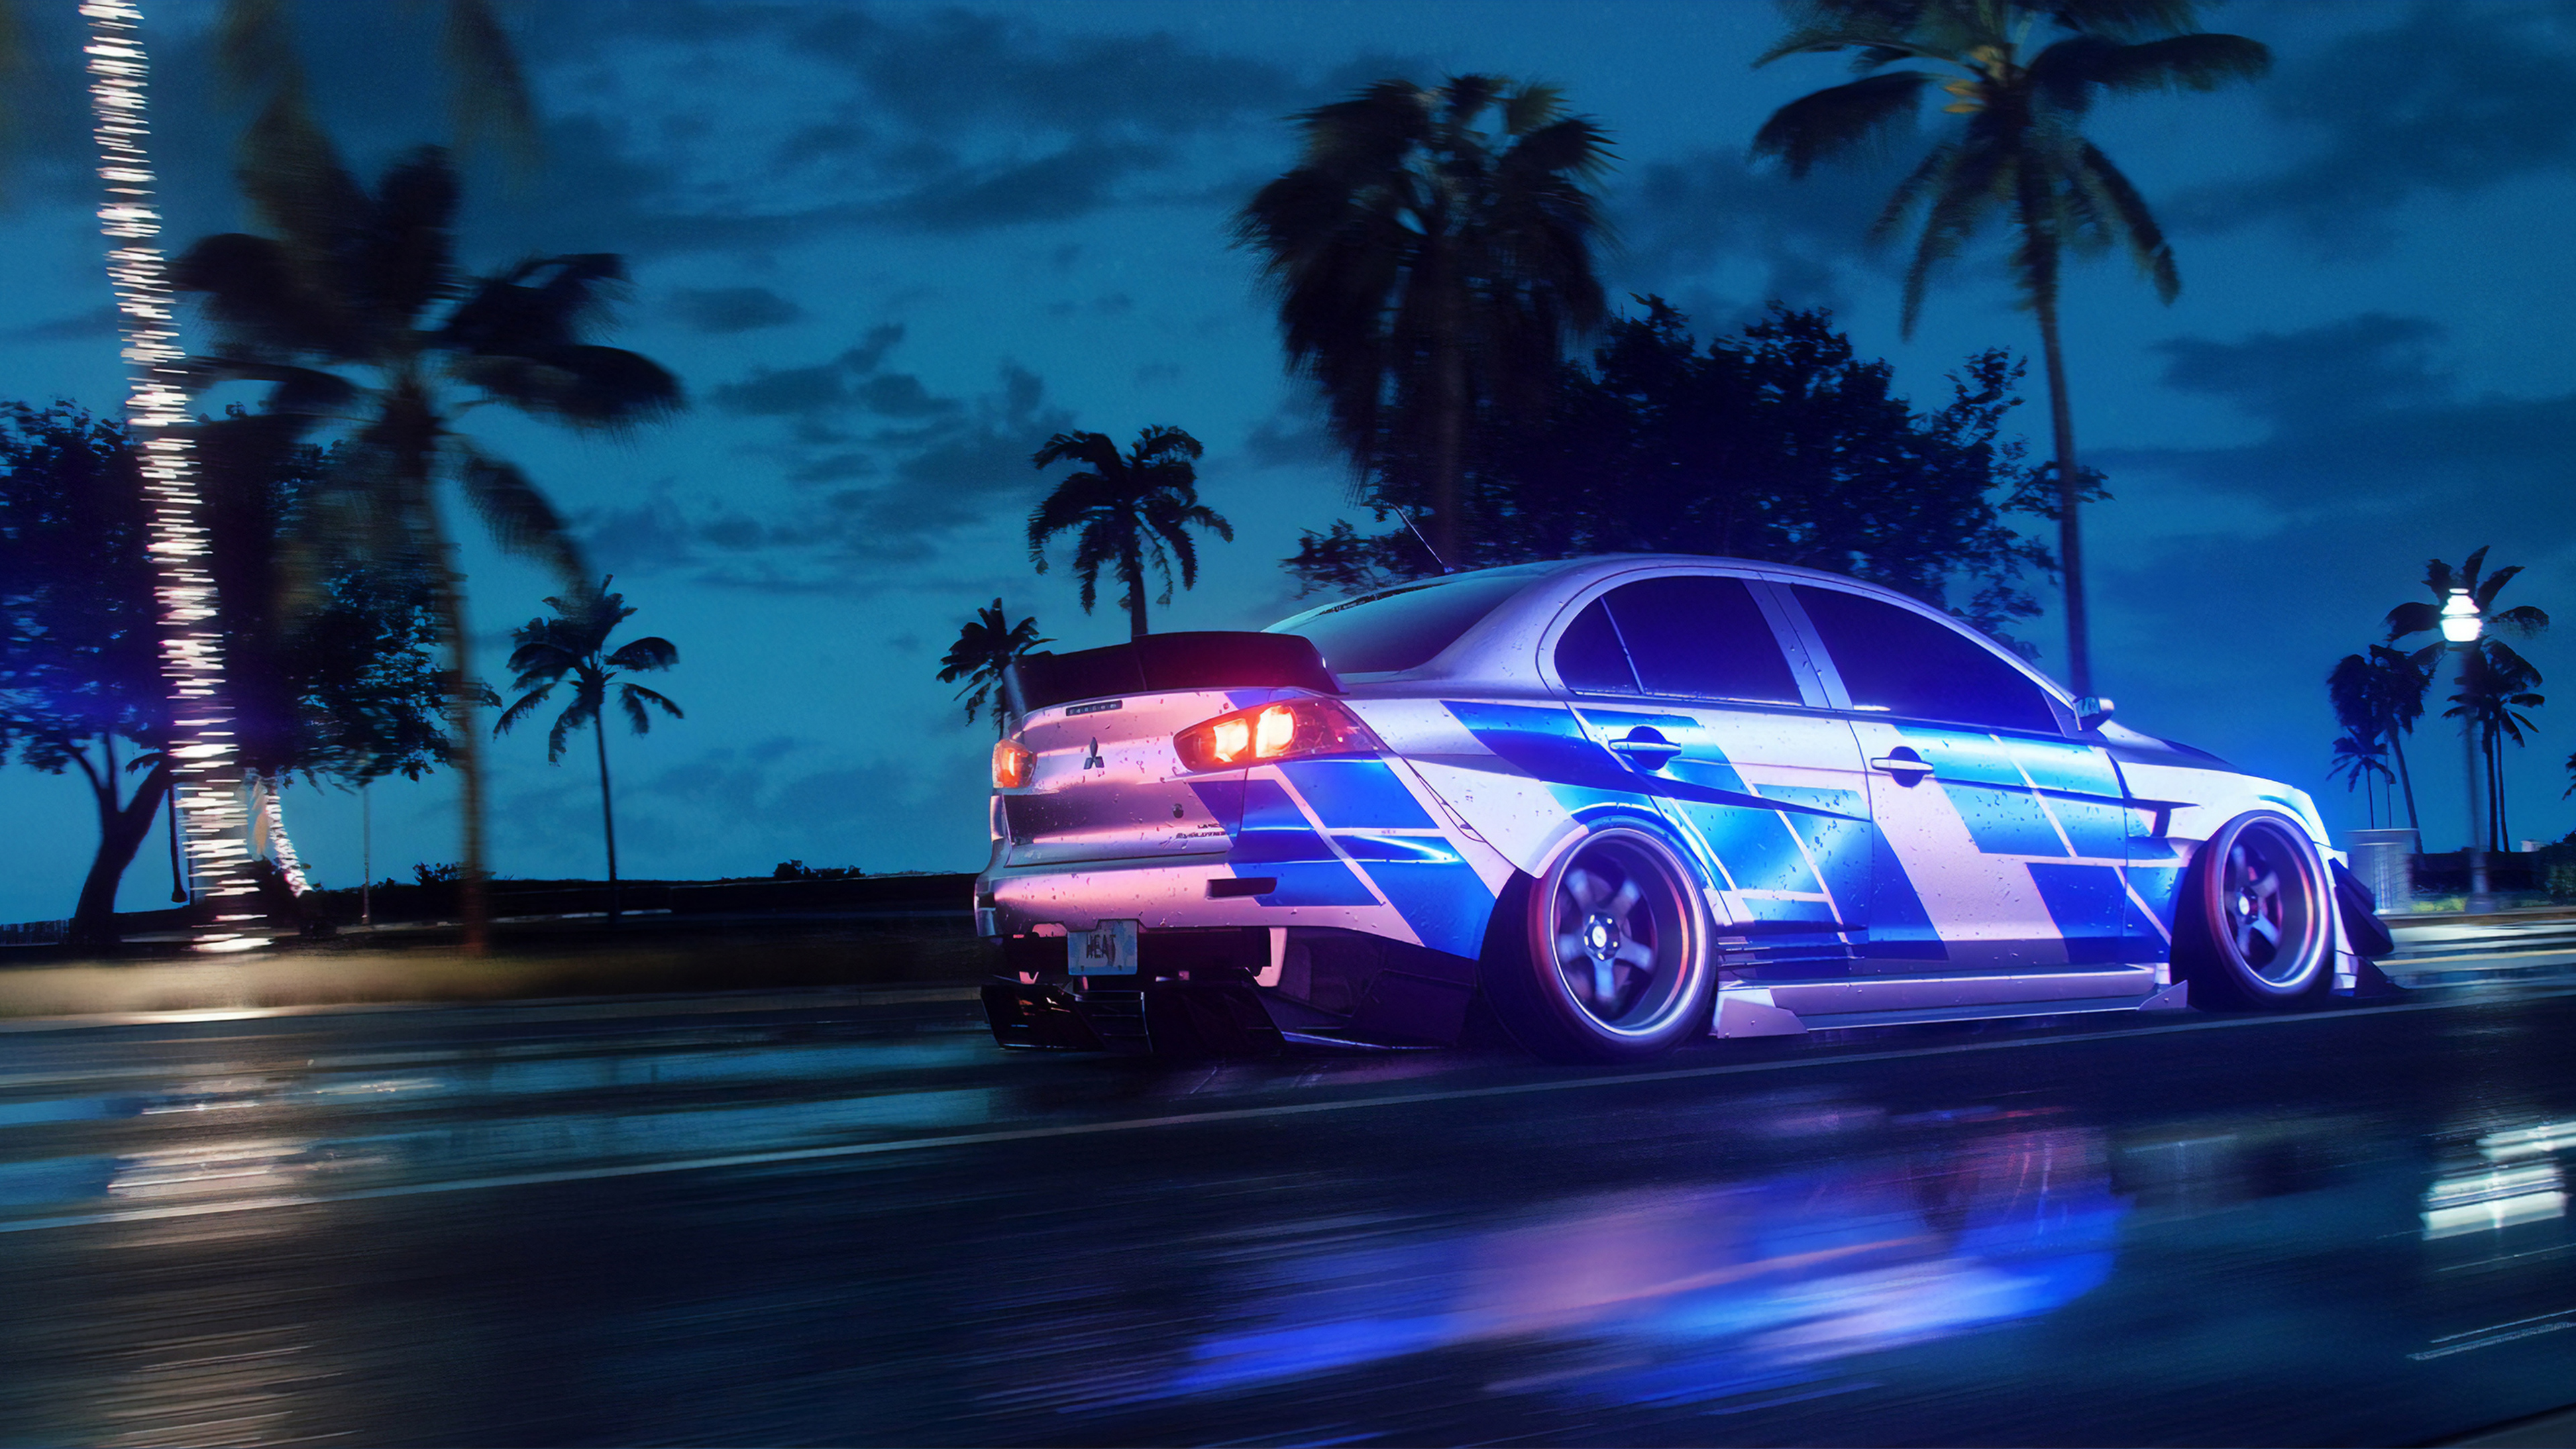 Wallpaper 4k Nfs Heat Mitsubishi Lancer 4k Wallpapers Artstation Wallpapers Games Wallpapers Hd Wallpapers Need